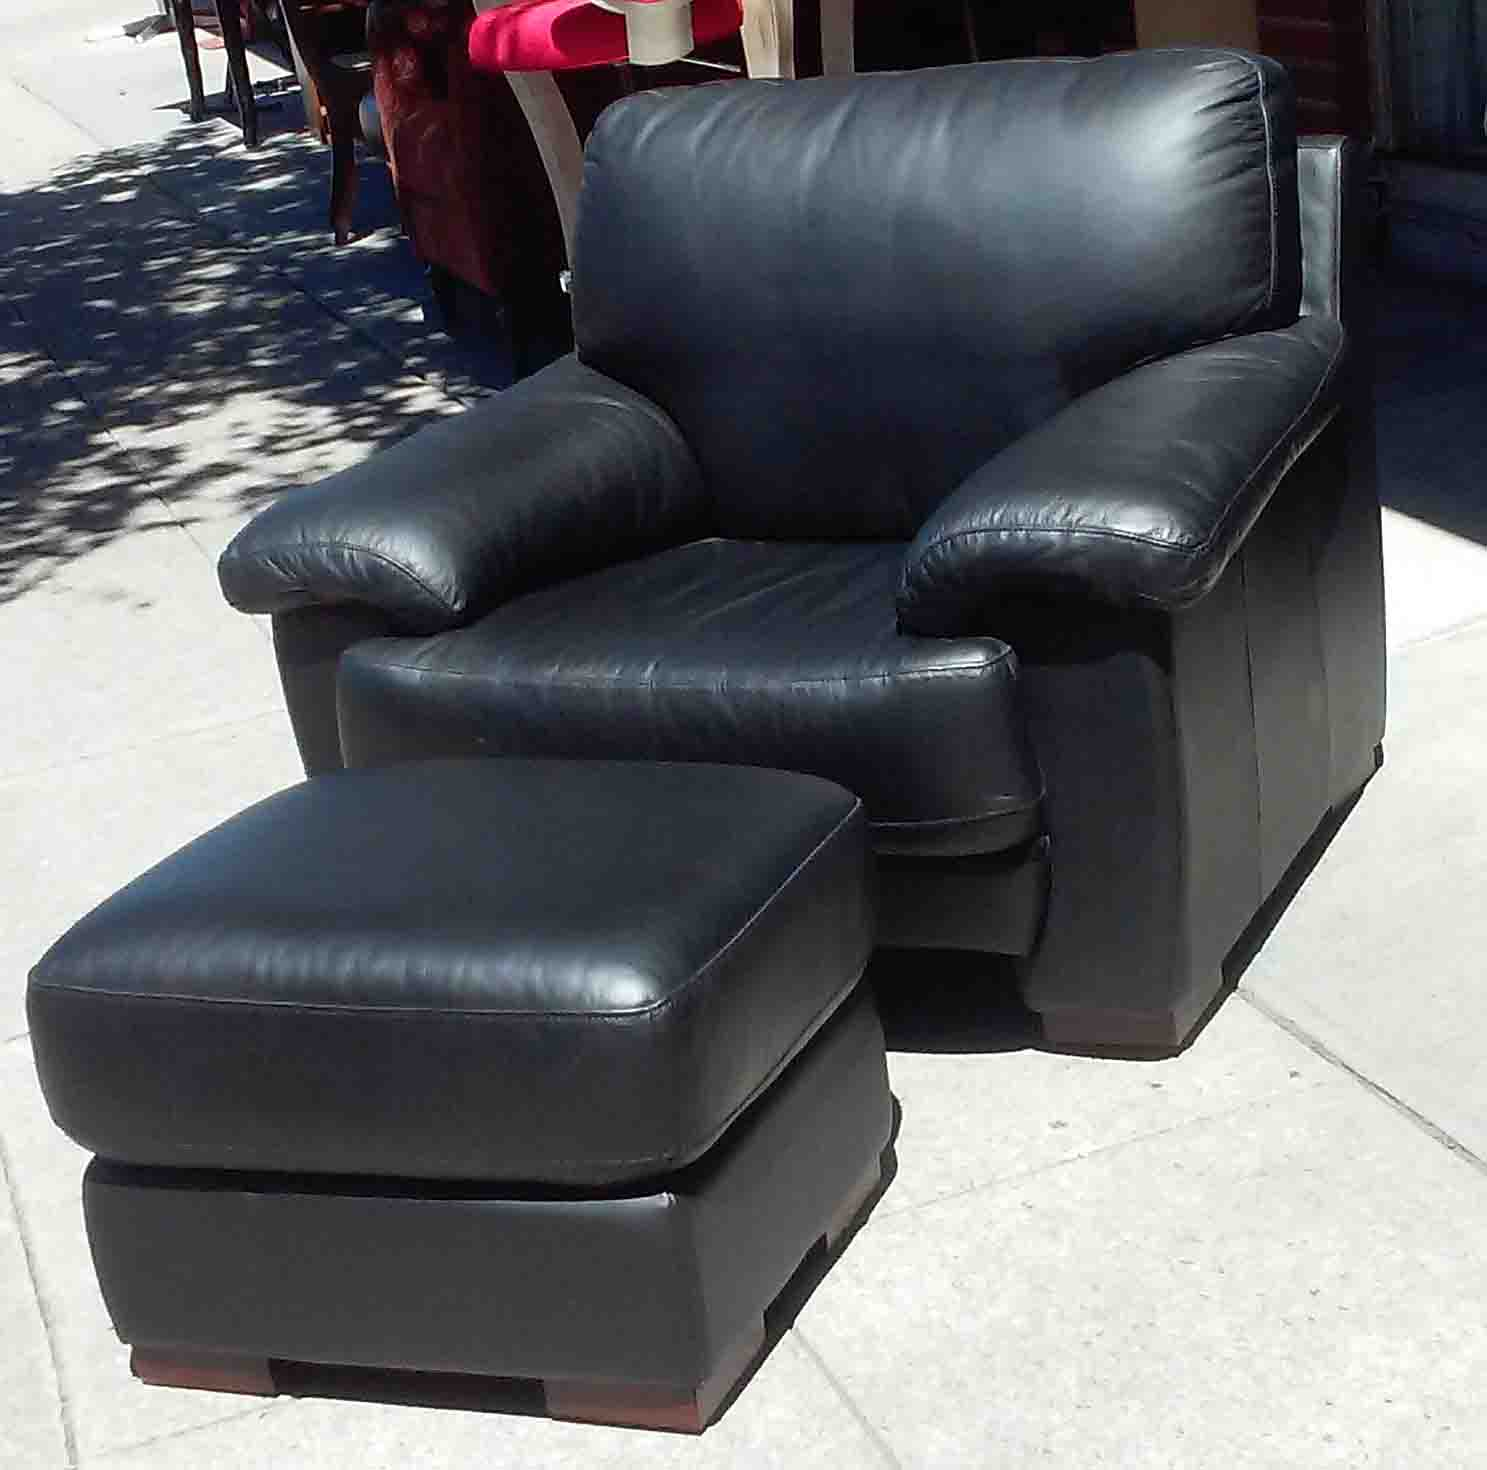 Black Leather Kitchen Chairs: UHURU FURNITURE & COLLECTIBLES: SOLD Black Leather Chair